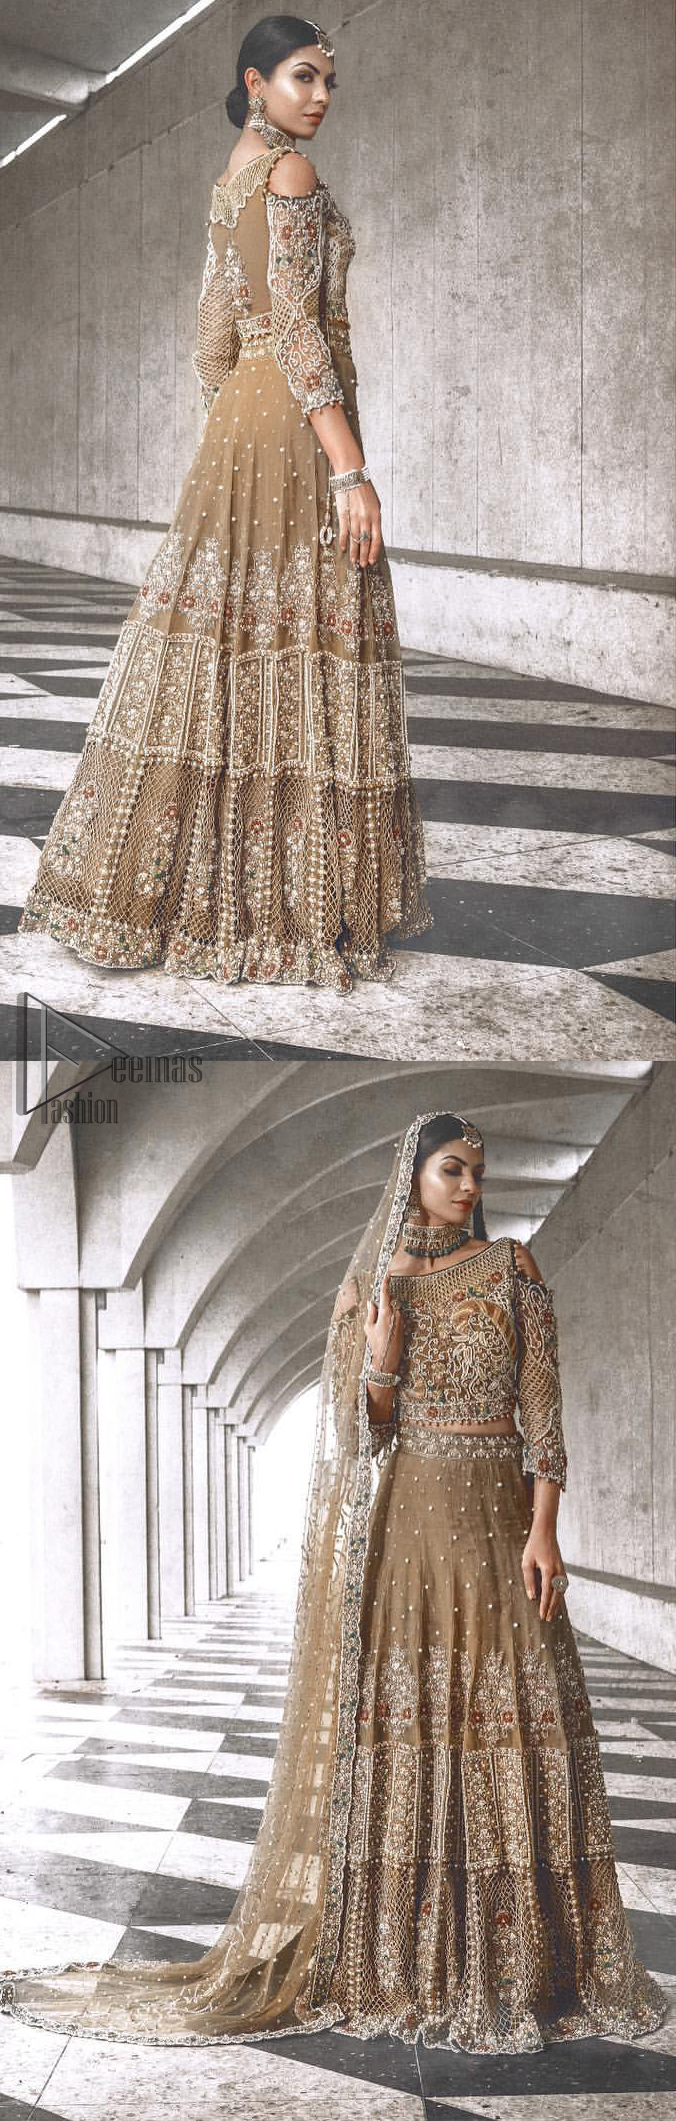 An example of beauty and elegance. Our bride makes a statement in this stunningly floraison, perfect blend of glamour and tradition with outstanding craftsmanship and gorgeous detailing. The cold shoulder blouse is stunningly embellished with intricate embroidered neckline done with light golden and silver zardosi work all over. Lehnga is compiled with zardozi embellishment which gives this festive season a flattering dimension to die for. The outfit is coordinated with beige net dupatta adorned with scattered sequins all over and four sided border.